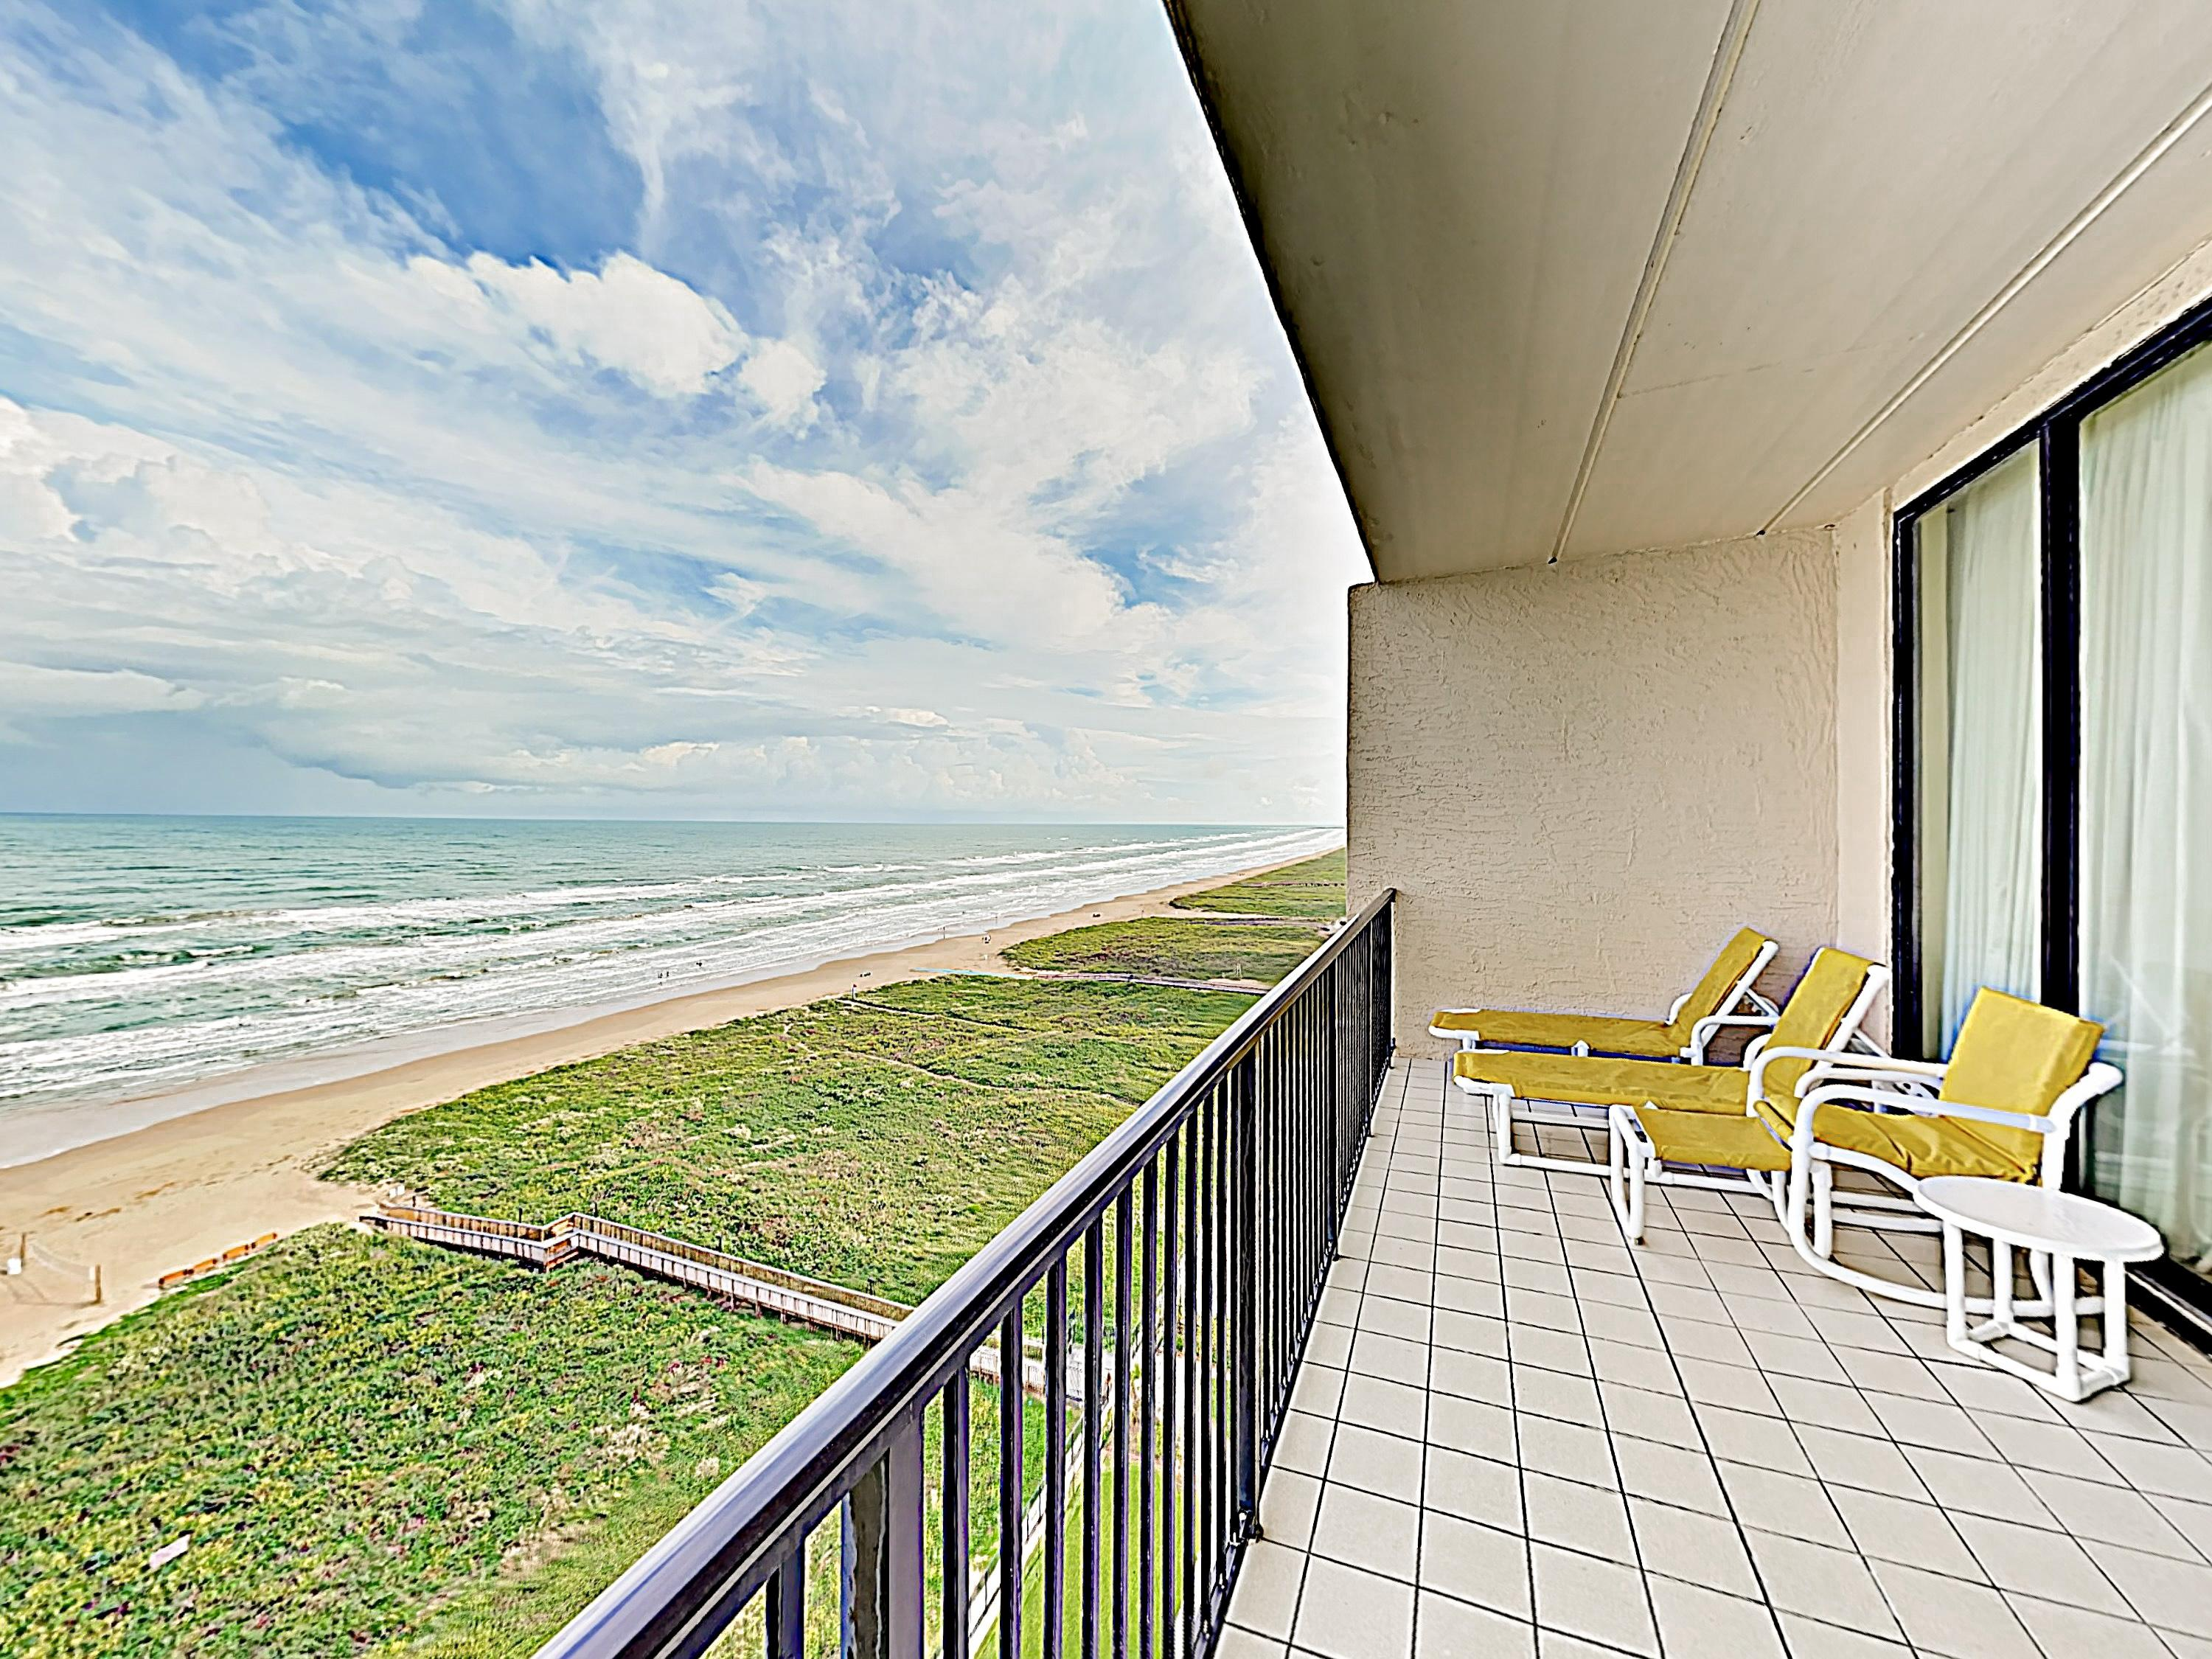 Take in dazzling Gulf views from your large private balcony.